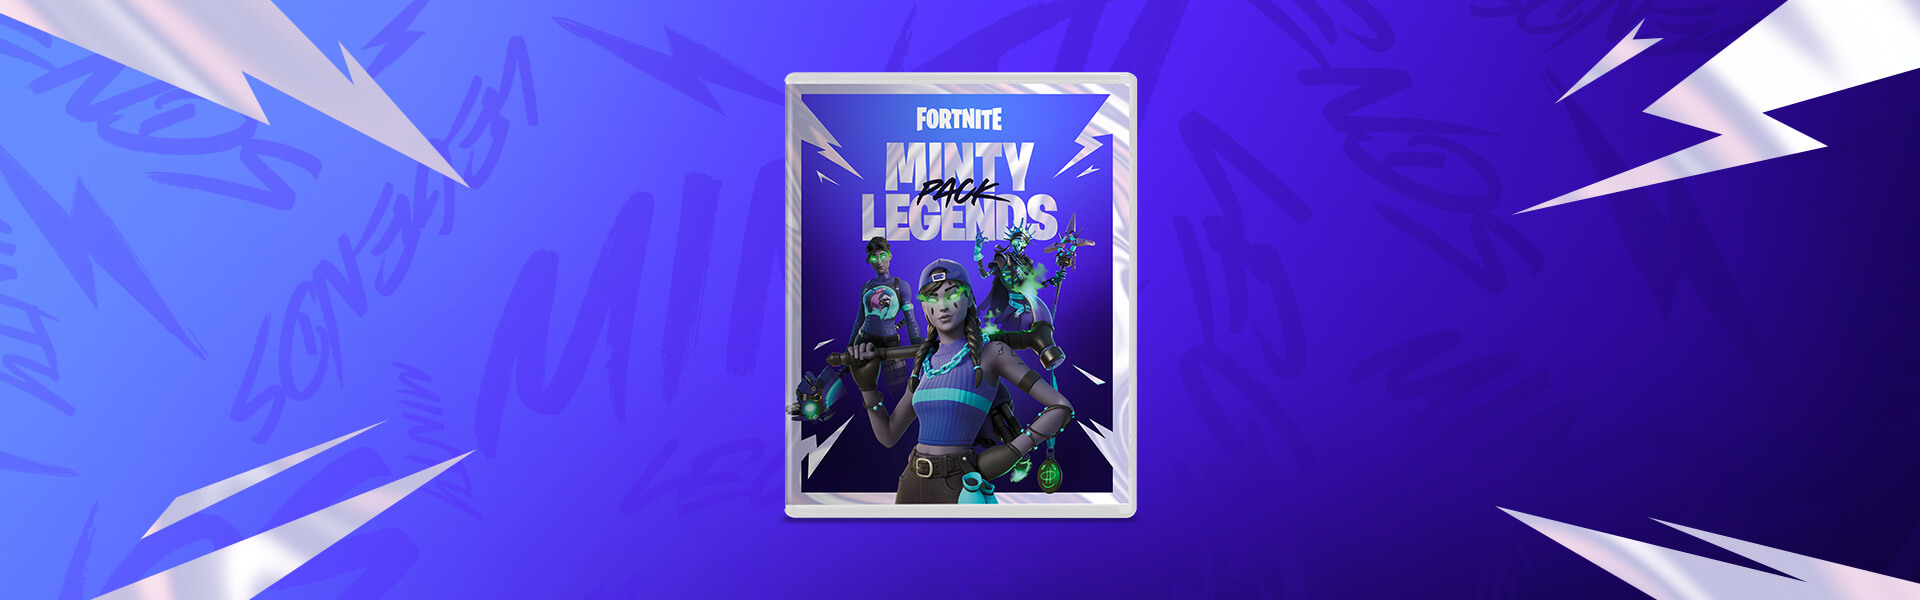 The Fortnite Minty Legends Pack